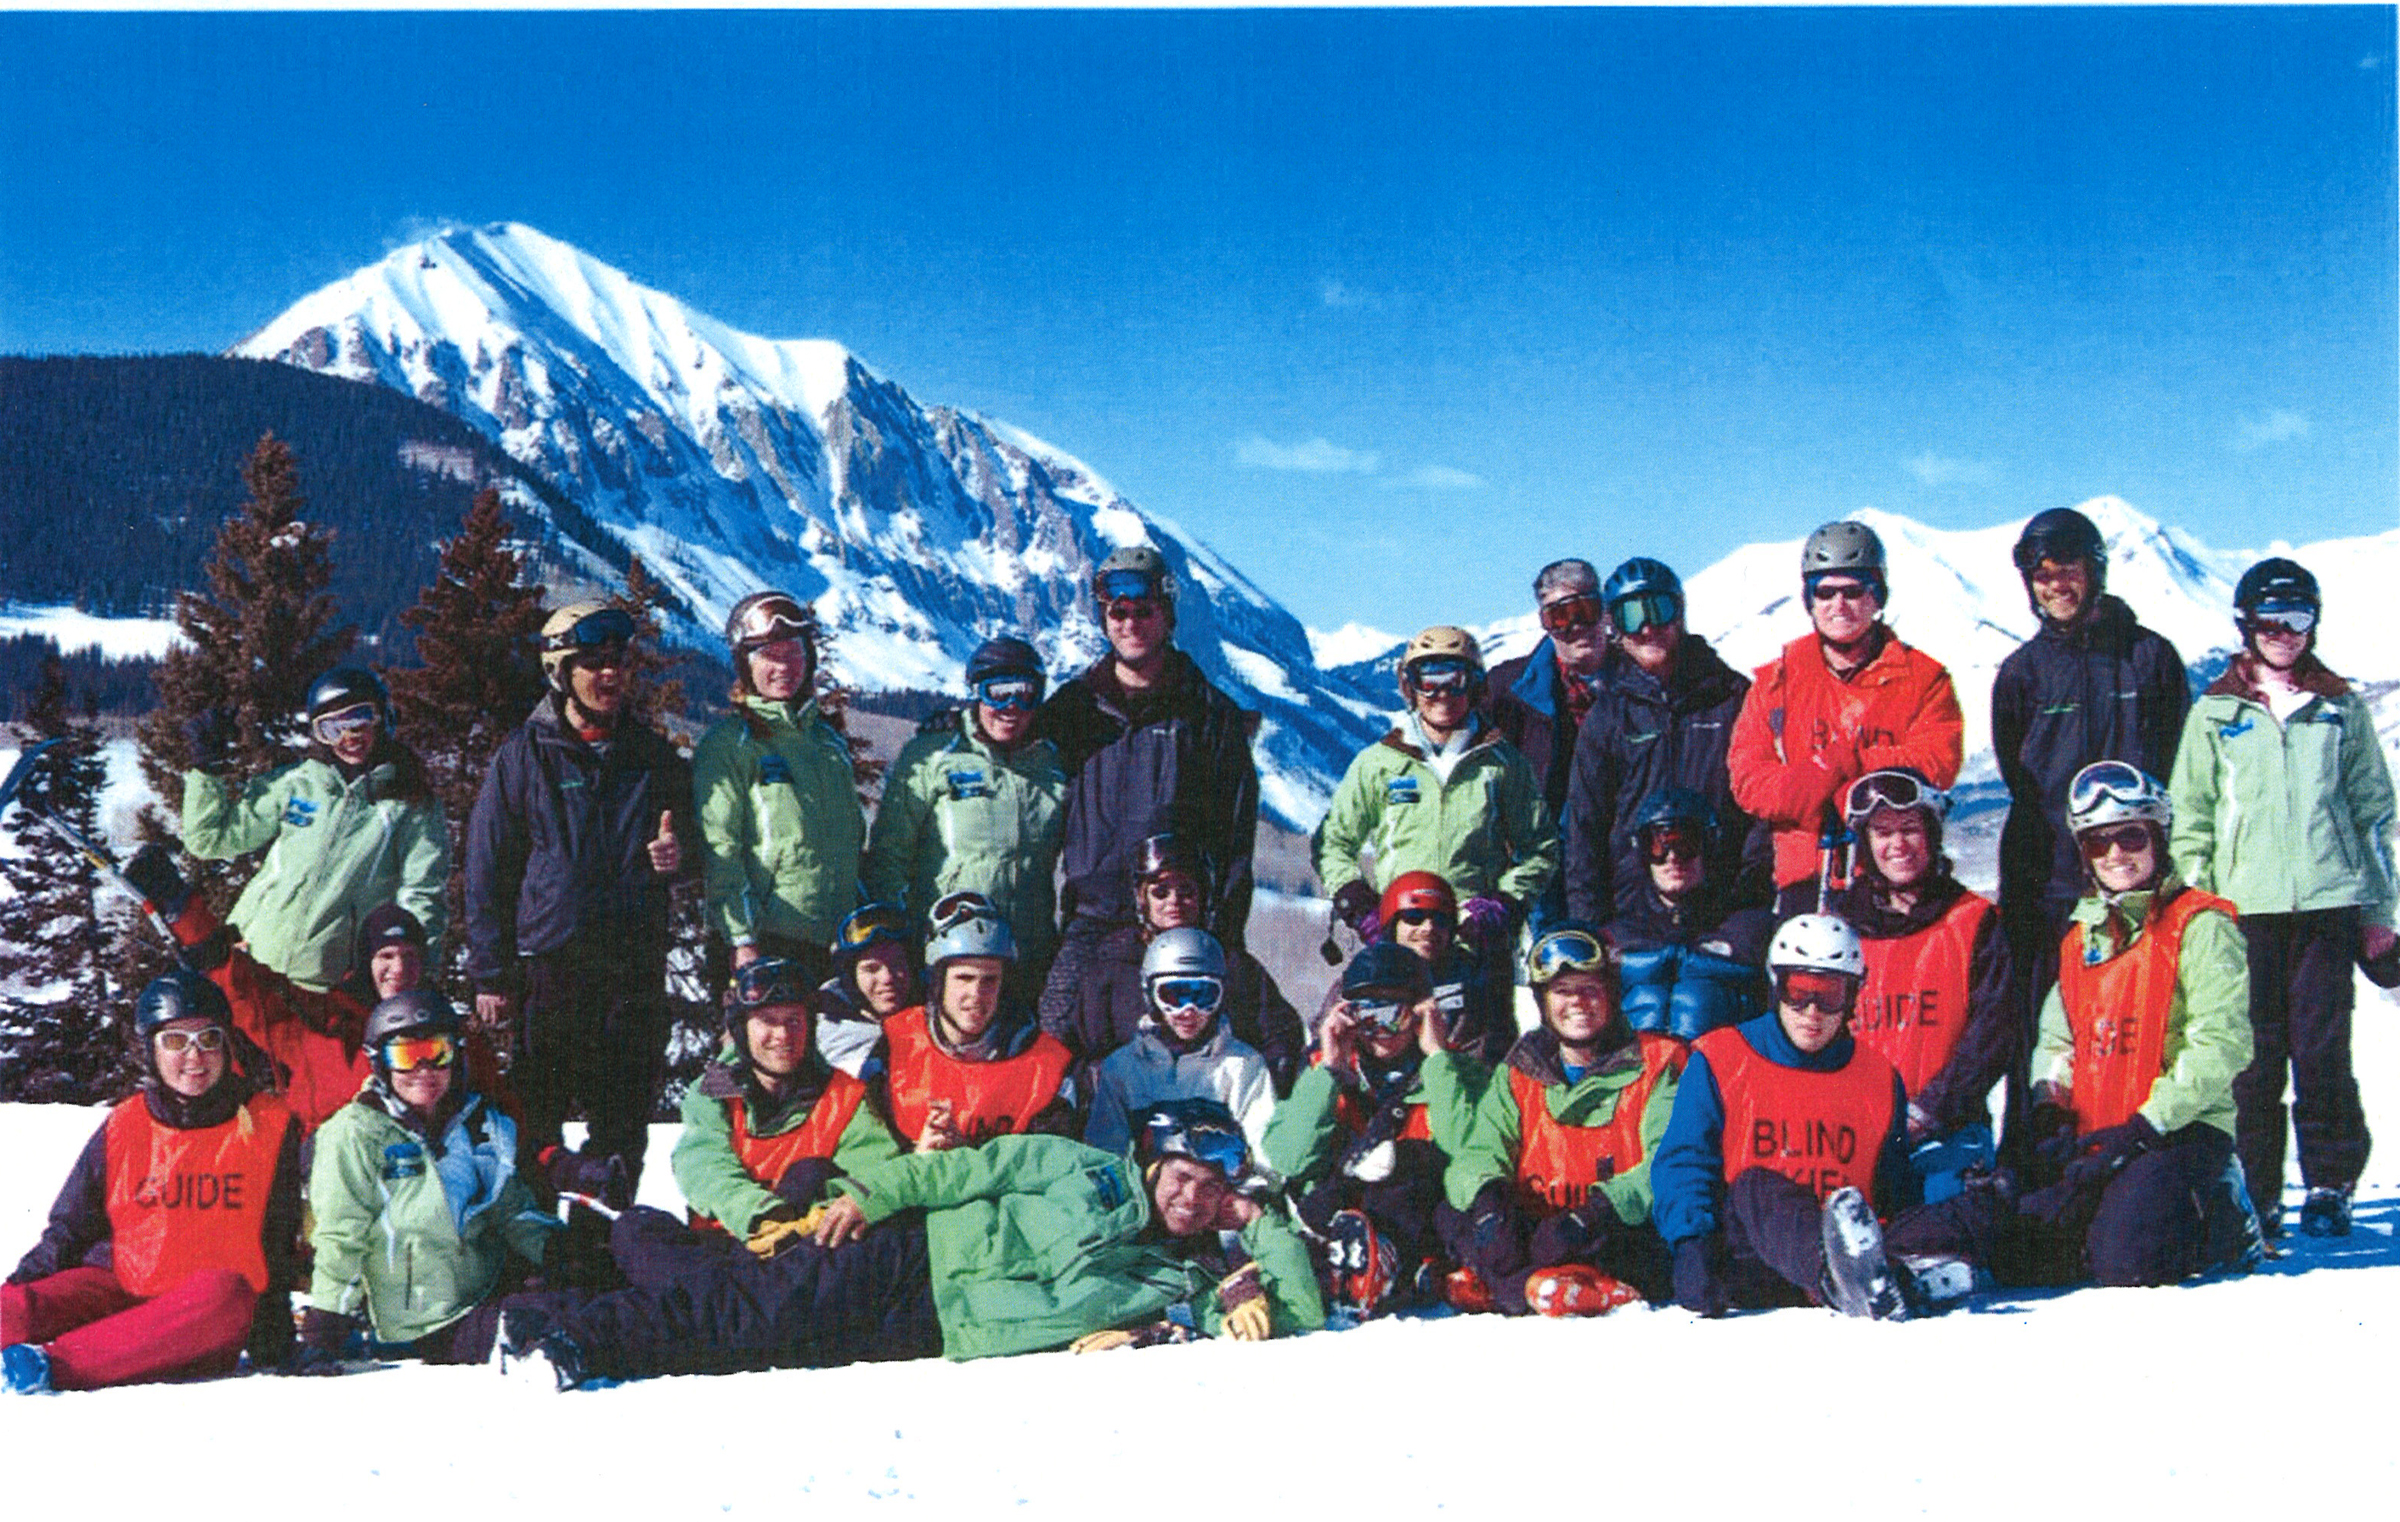 student ski group in Crested Butte, Colorado